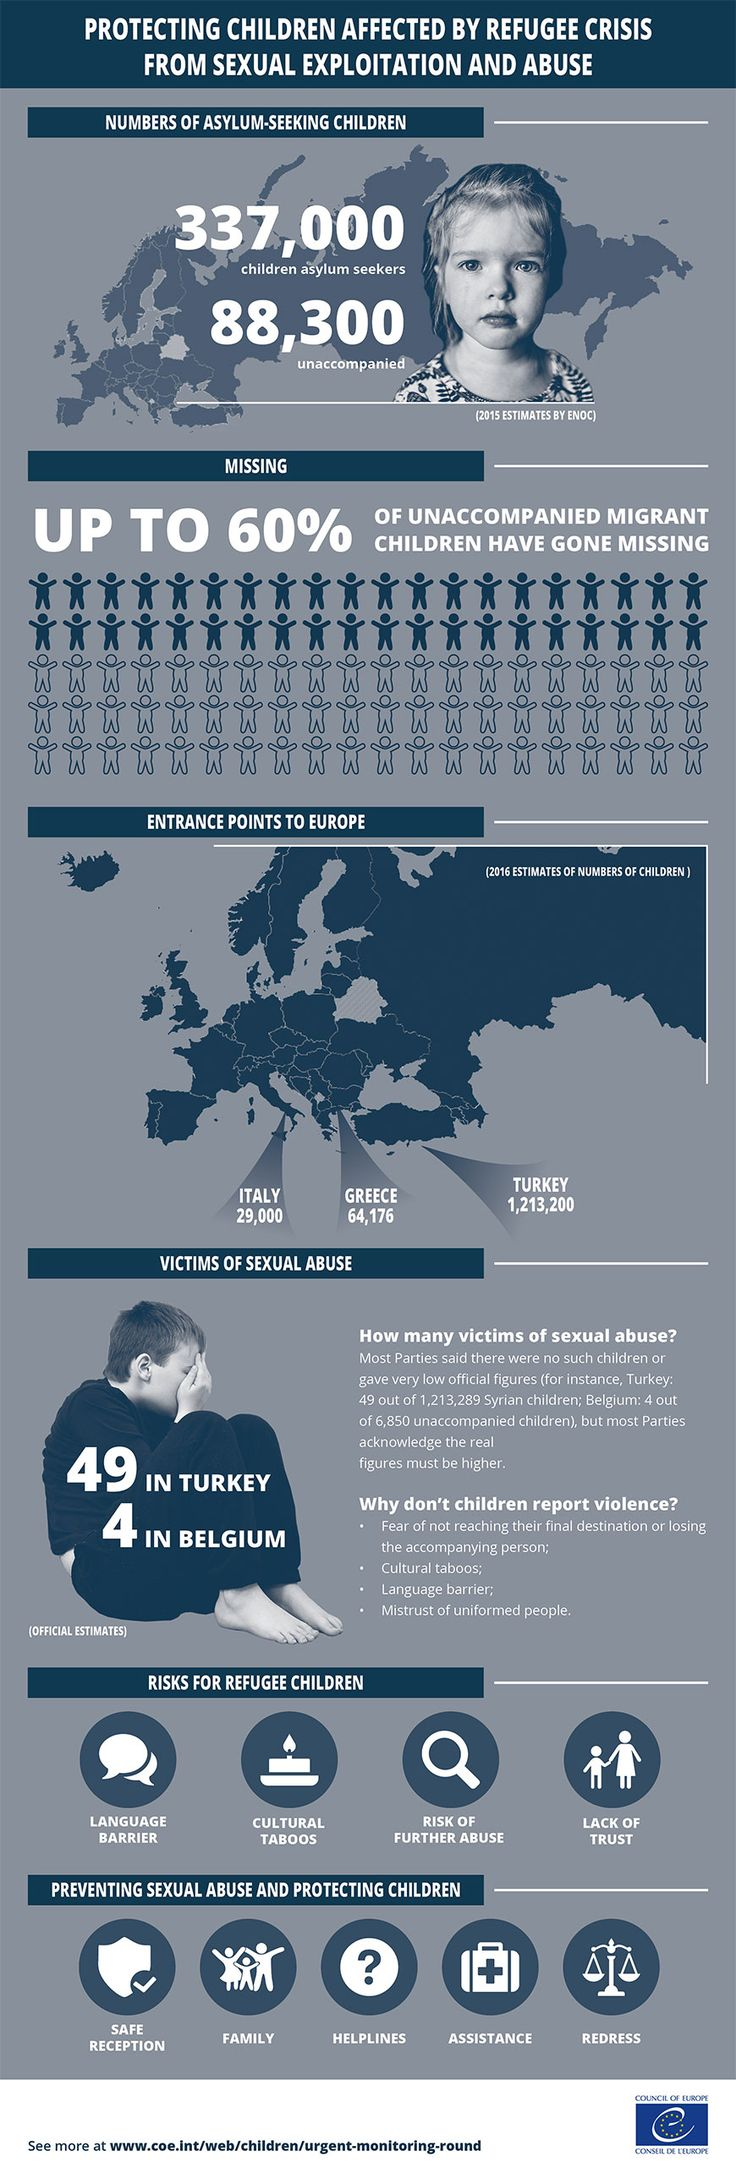 Protecting Children Affected by Refugee Crisis from Sexual Exploitation and Abuse (Infographic) | Child Protection Hub for South East Europe